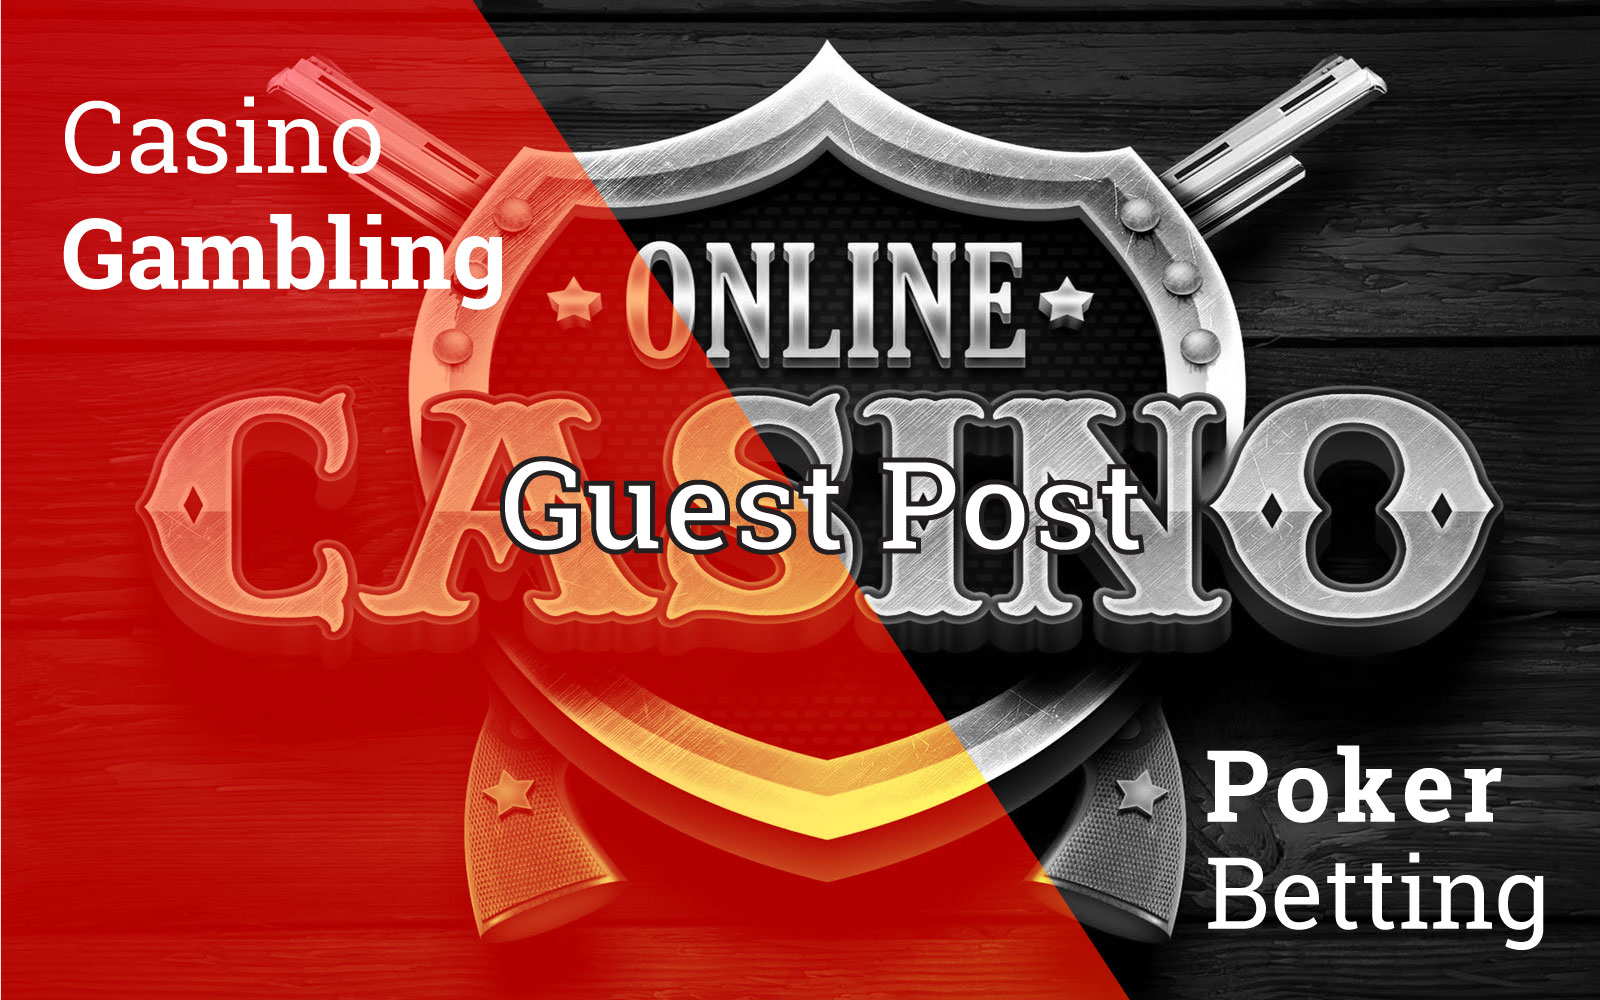 301 Manual With 200K Tire-2 Backlinks for Casino Gambling Poker sports Betting Online Casino Sites